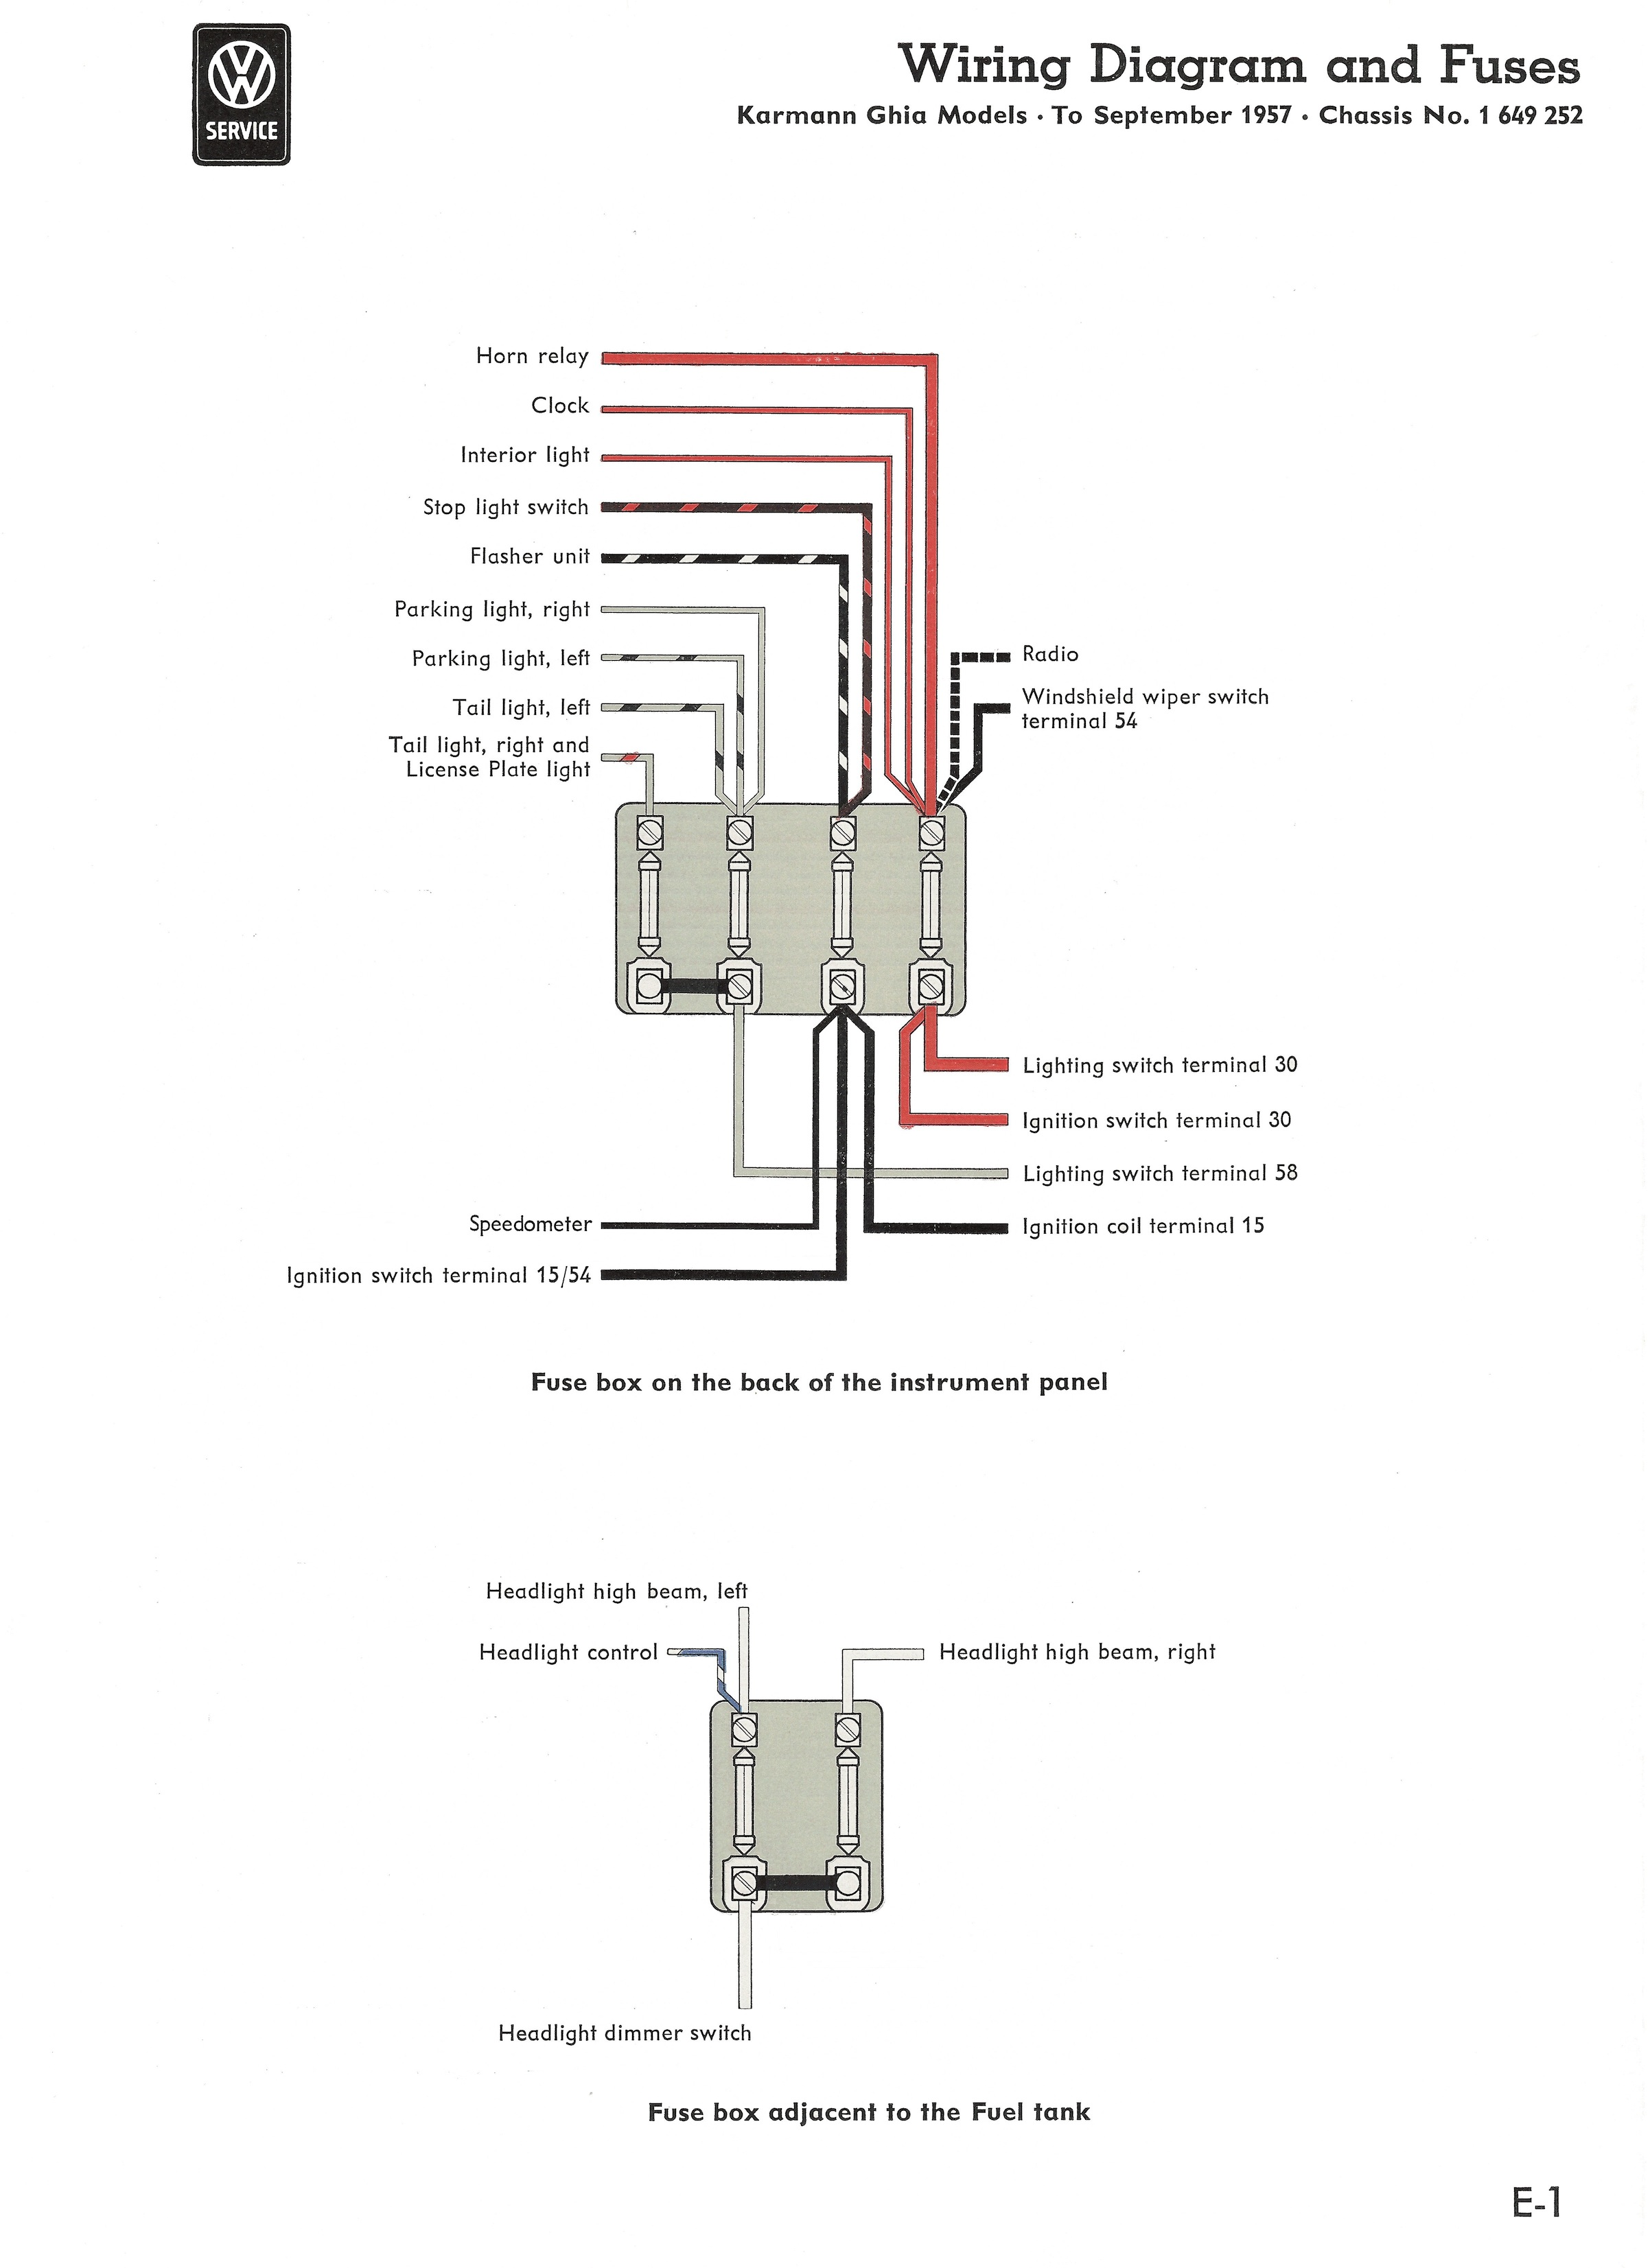 gmg fuse box wiring diagram thesamba.com :: karmann ghia wiring diagrams #4